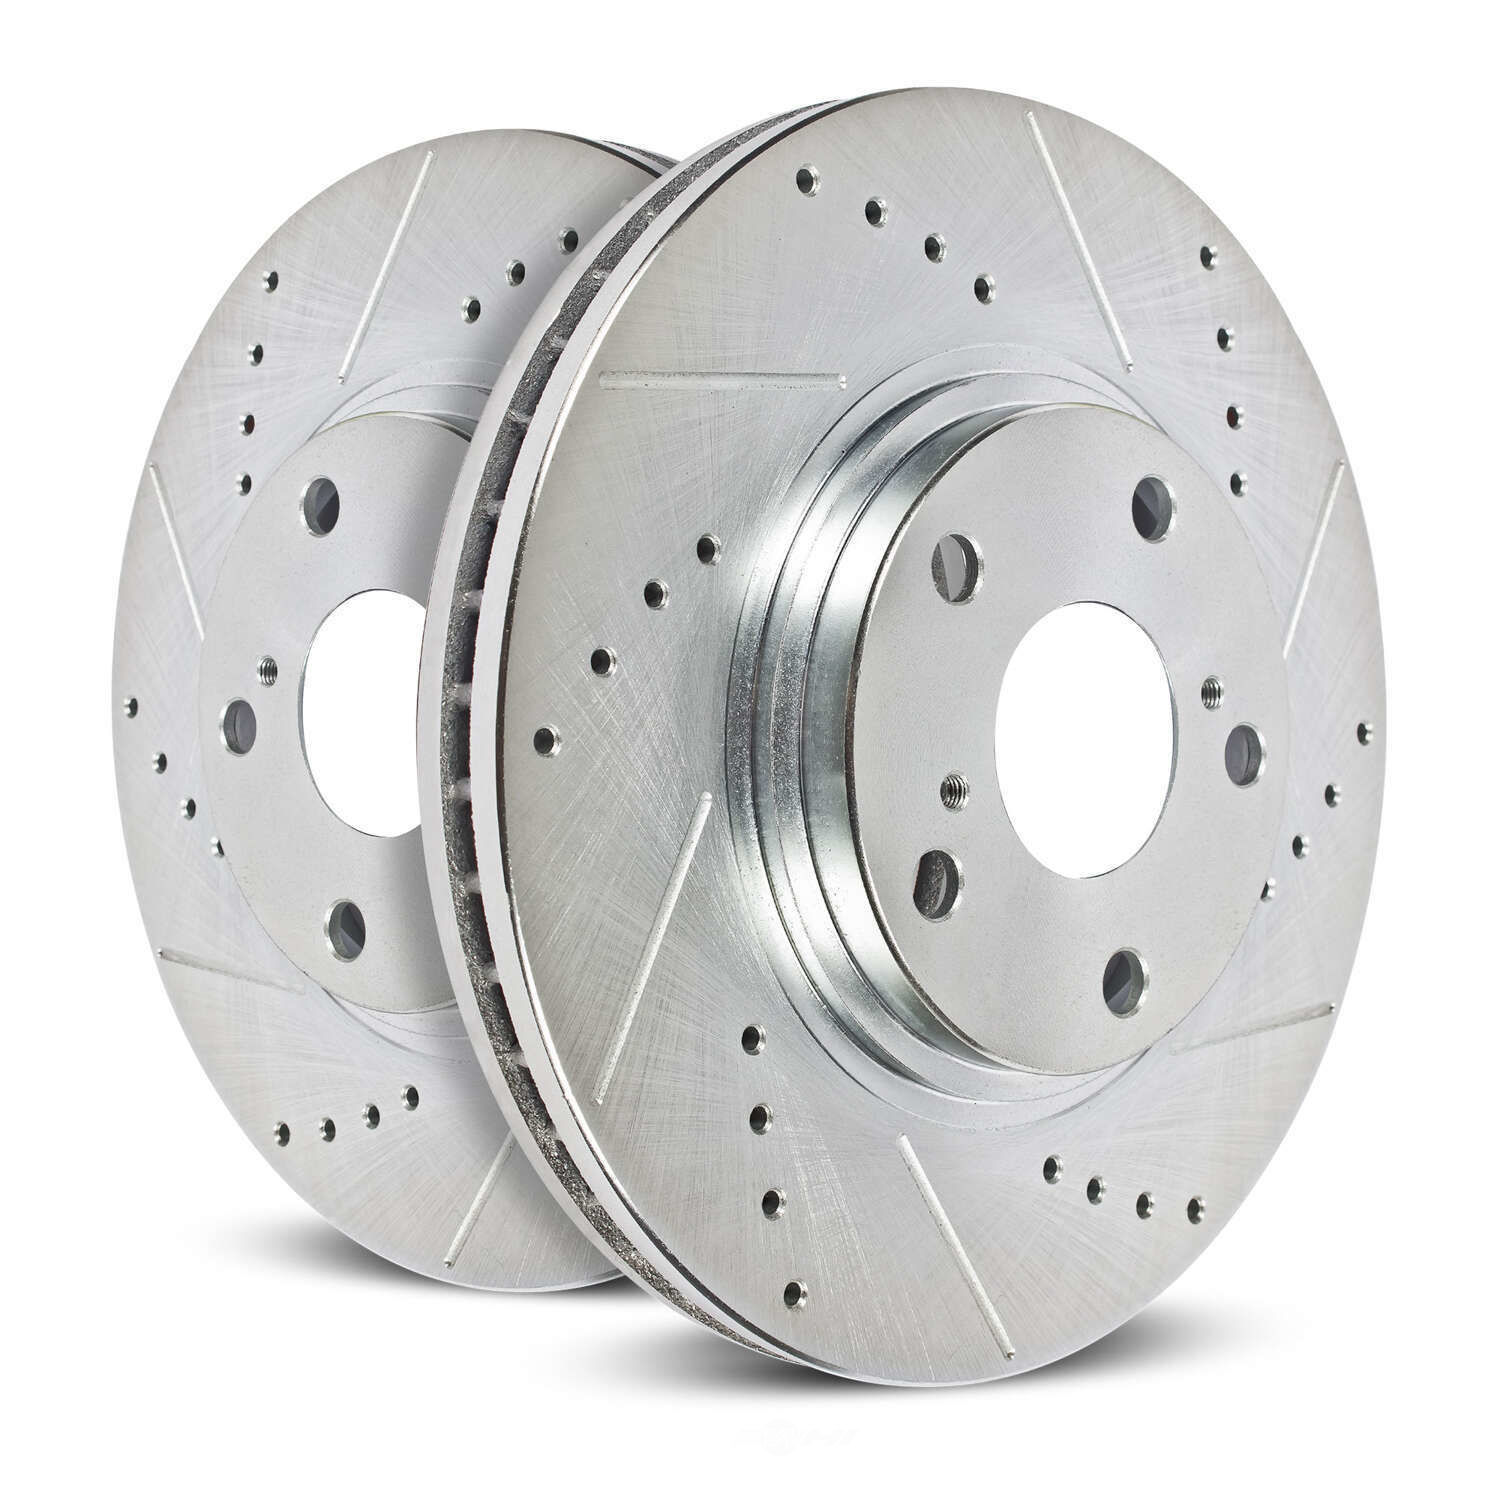 POWER STOP - Evolution Performance Drilled, Slotted& Plated Brake Rotor Pair (Front) - PWS JBR1129XPR